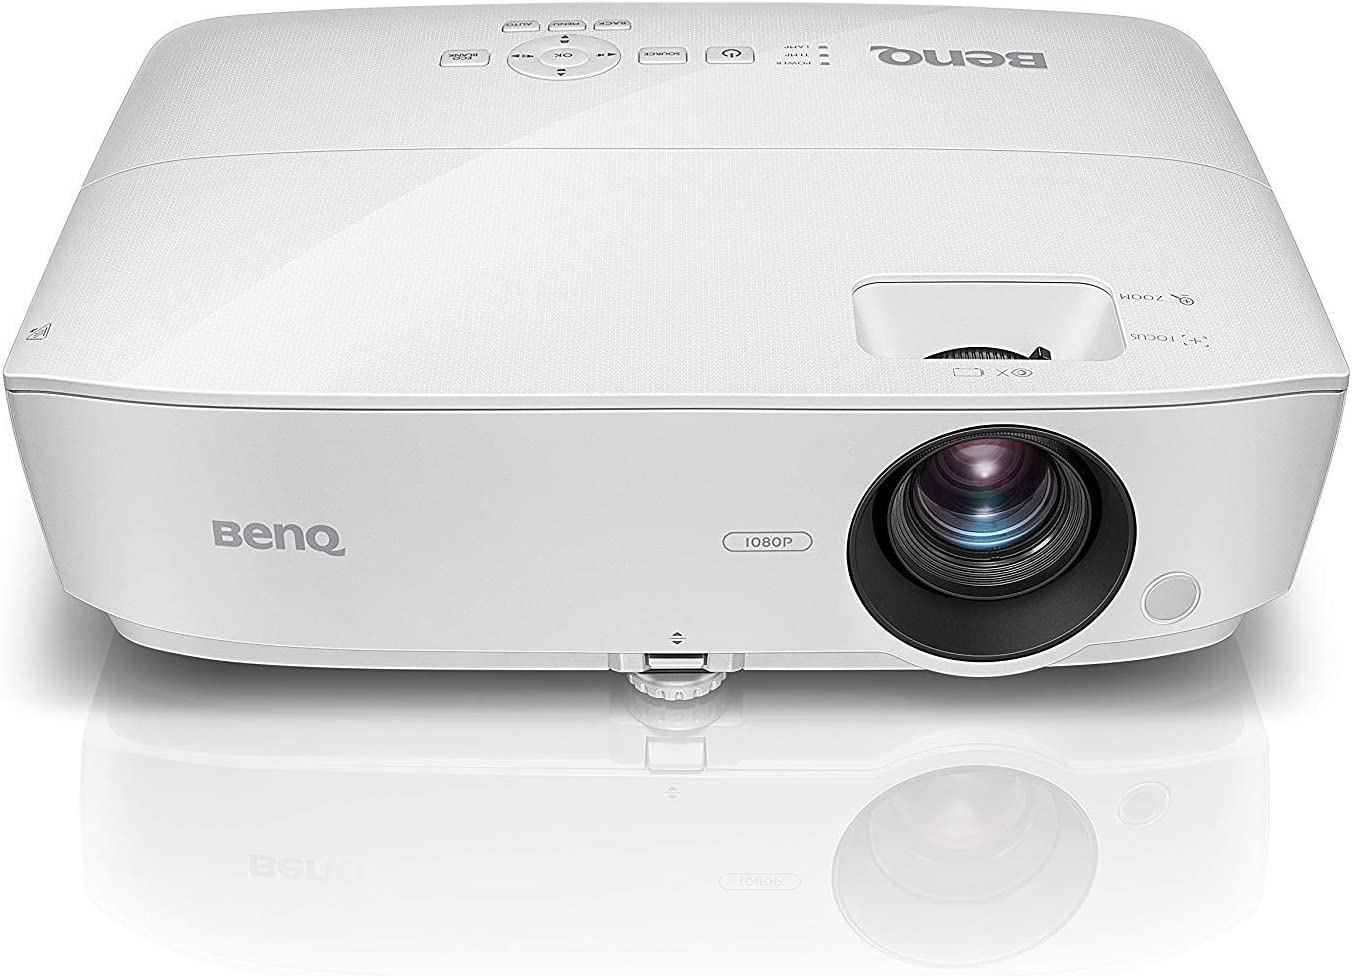 BenQ MH535FHD 1080P Home Theater Projector | 3600 Lumens for Lights on Enjoyment | High Contrast Ratio for Darker Blacks | Keystone and 1.2x Zoom for Flexible Setup (Renewed)